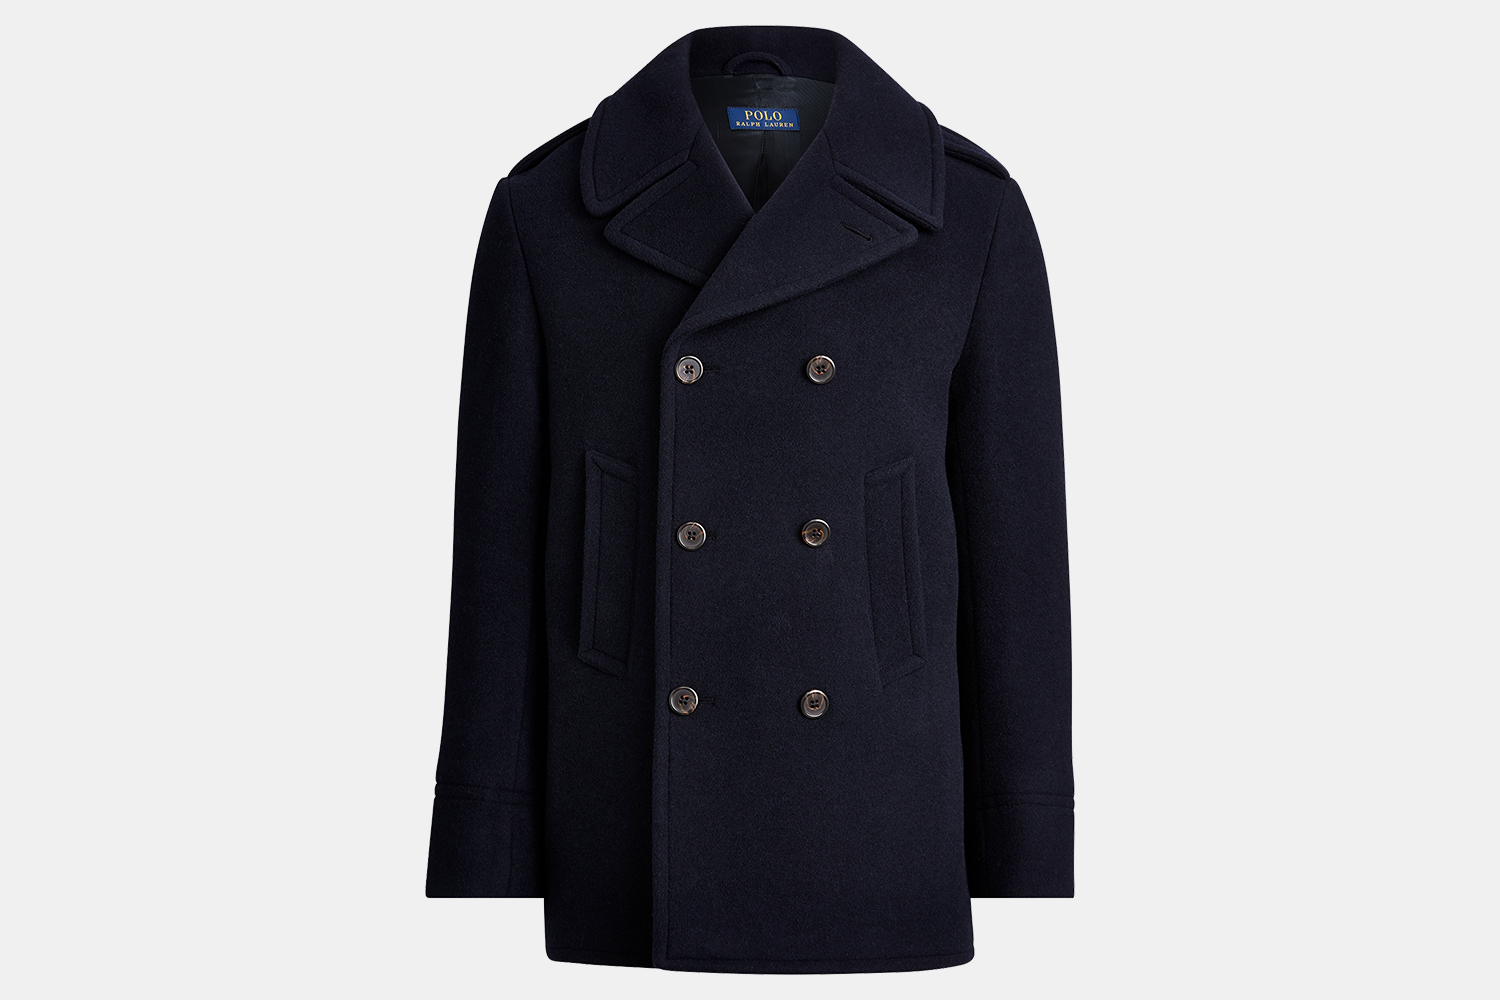 Ralph Lauren Polo Wool-Blend Peacoat